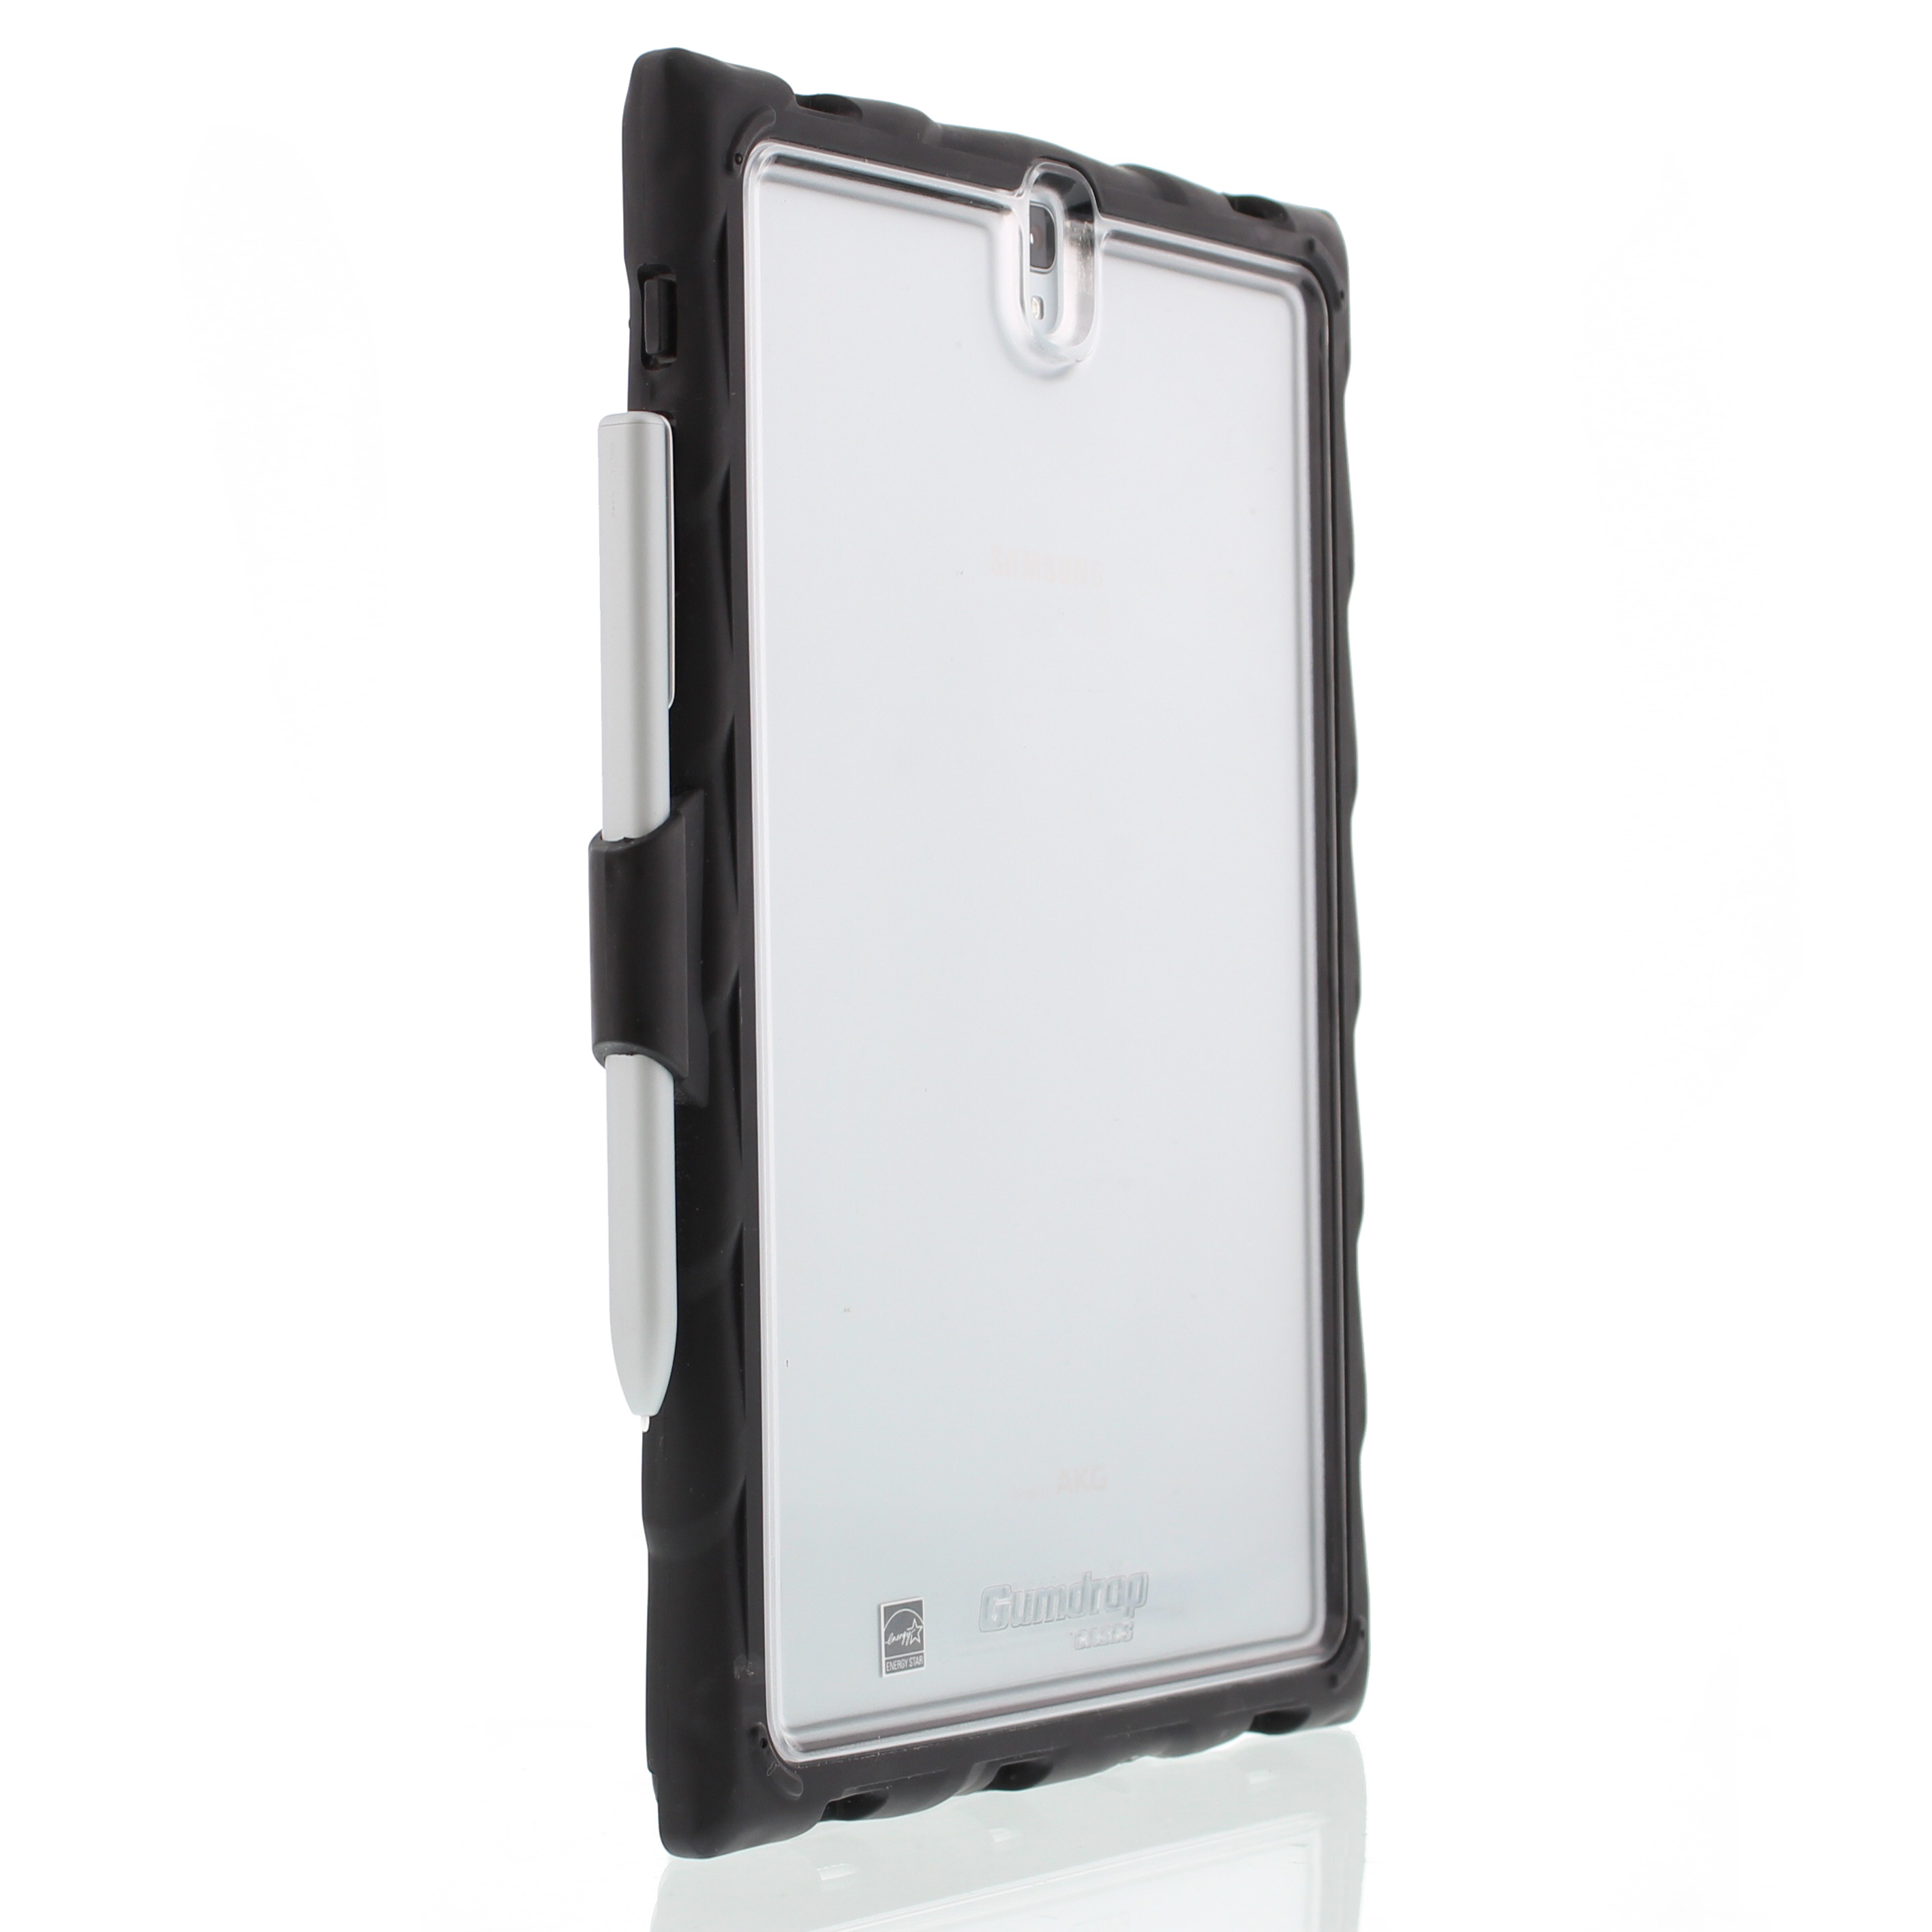 Gum Drop DropTech Case for Samsung Galaxy Tab S3 - Clear